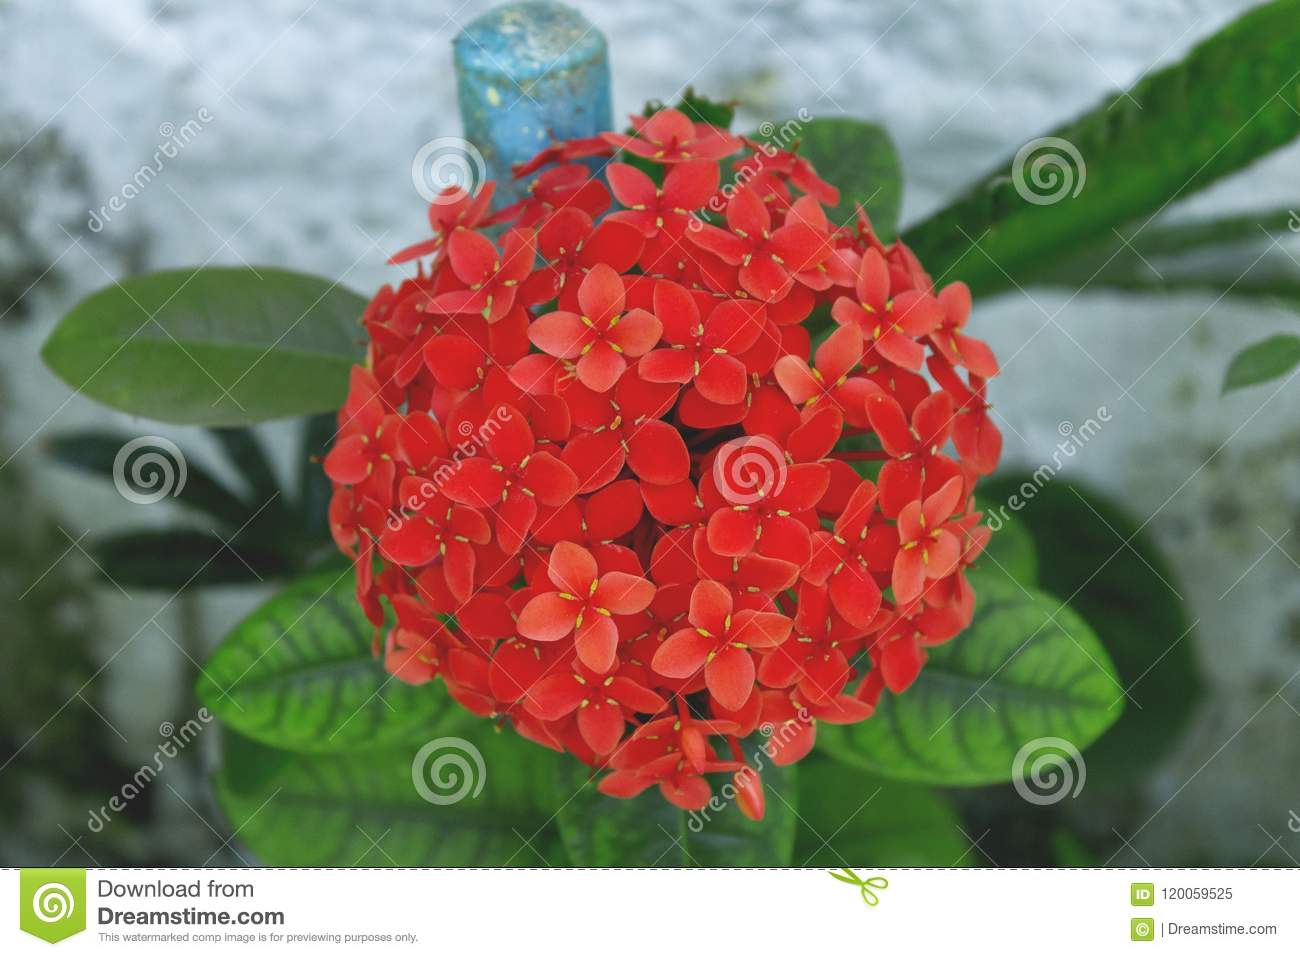 The most beautiful bouquet of flowers in the garden stock image a beautiful bouquet of red flowers in the garden of my mothers house located in the suburb of so paulo izmirmasajfo